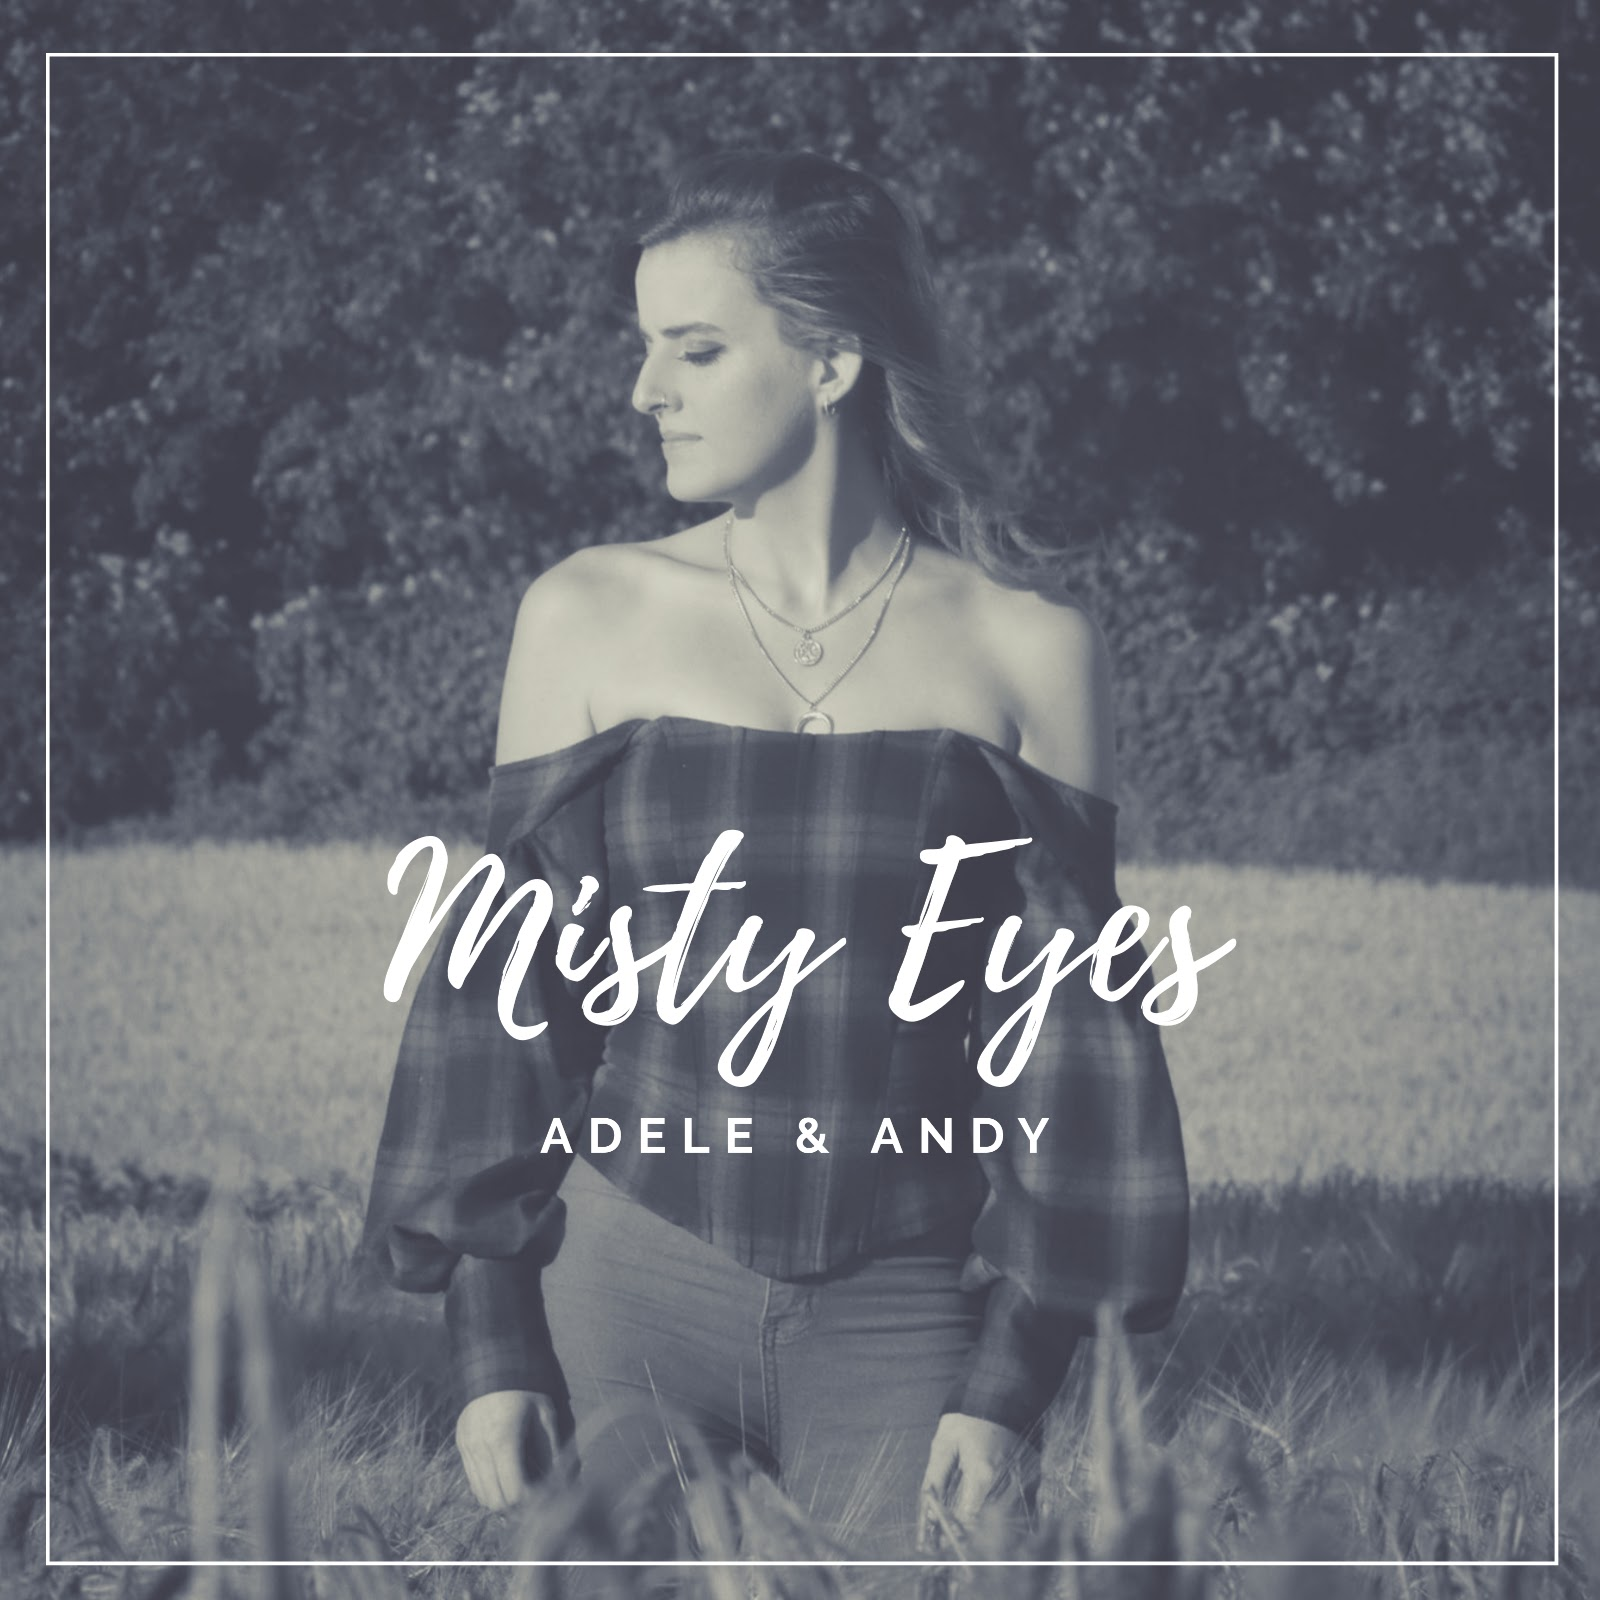 Adele-and-andy-misty-eyes-alongsidenashville-339